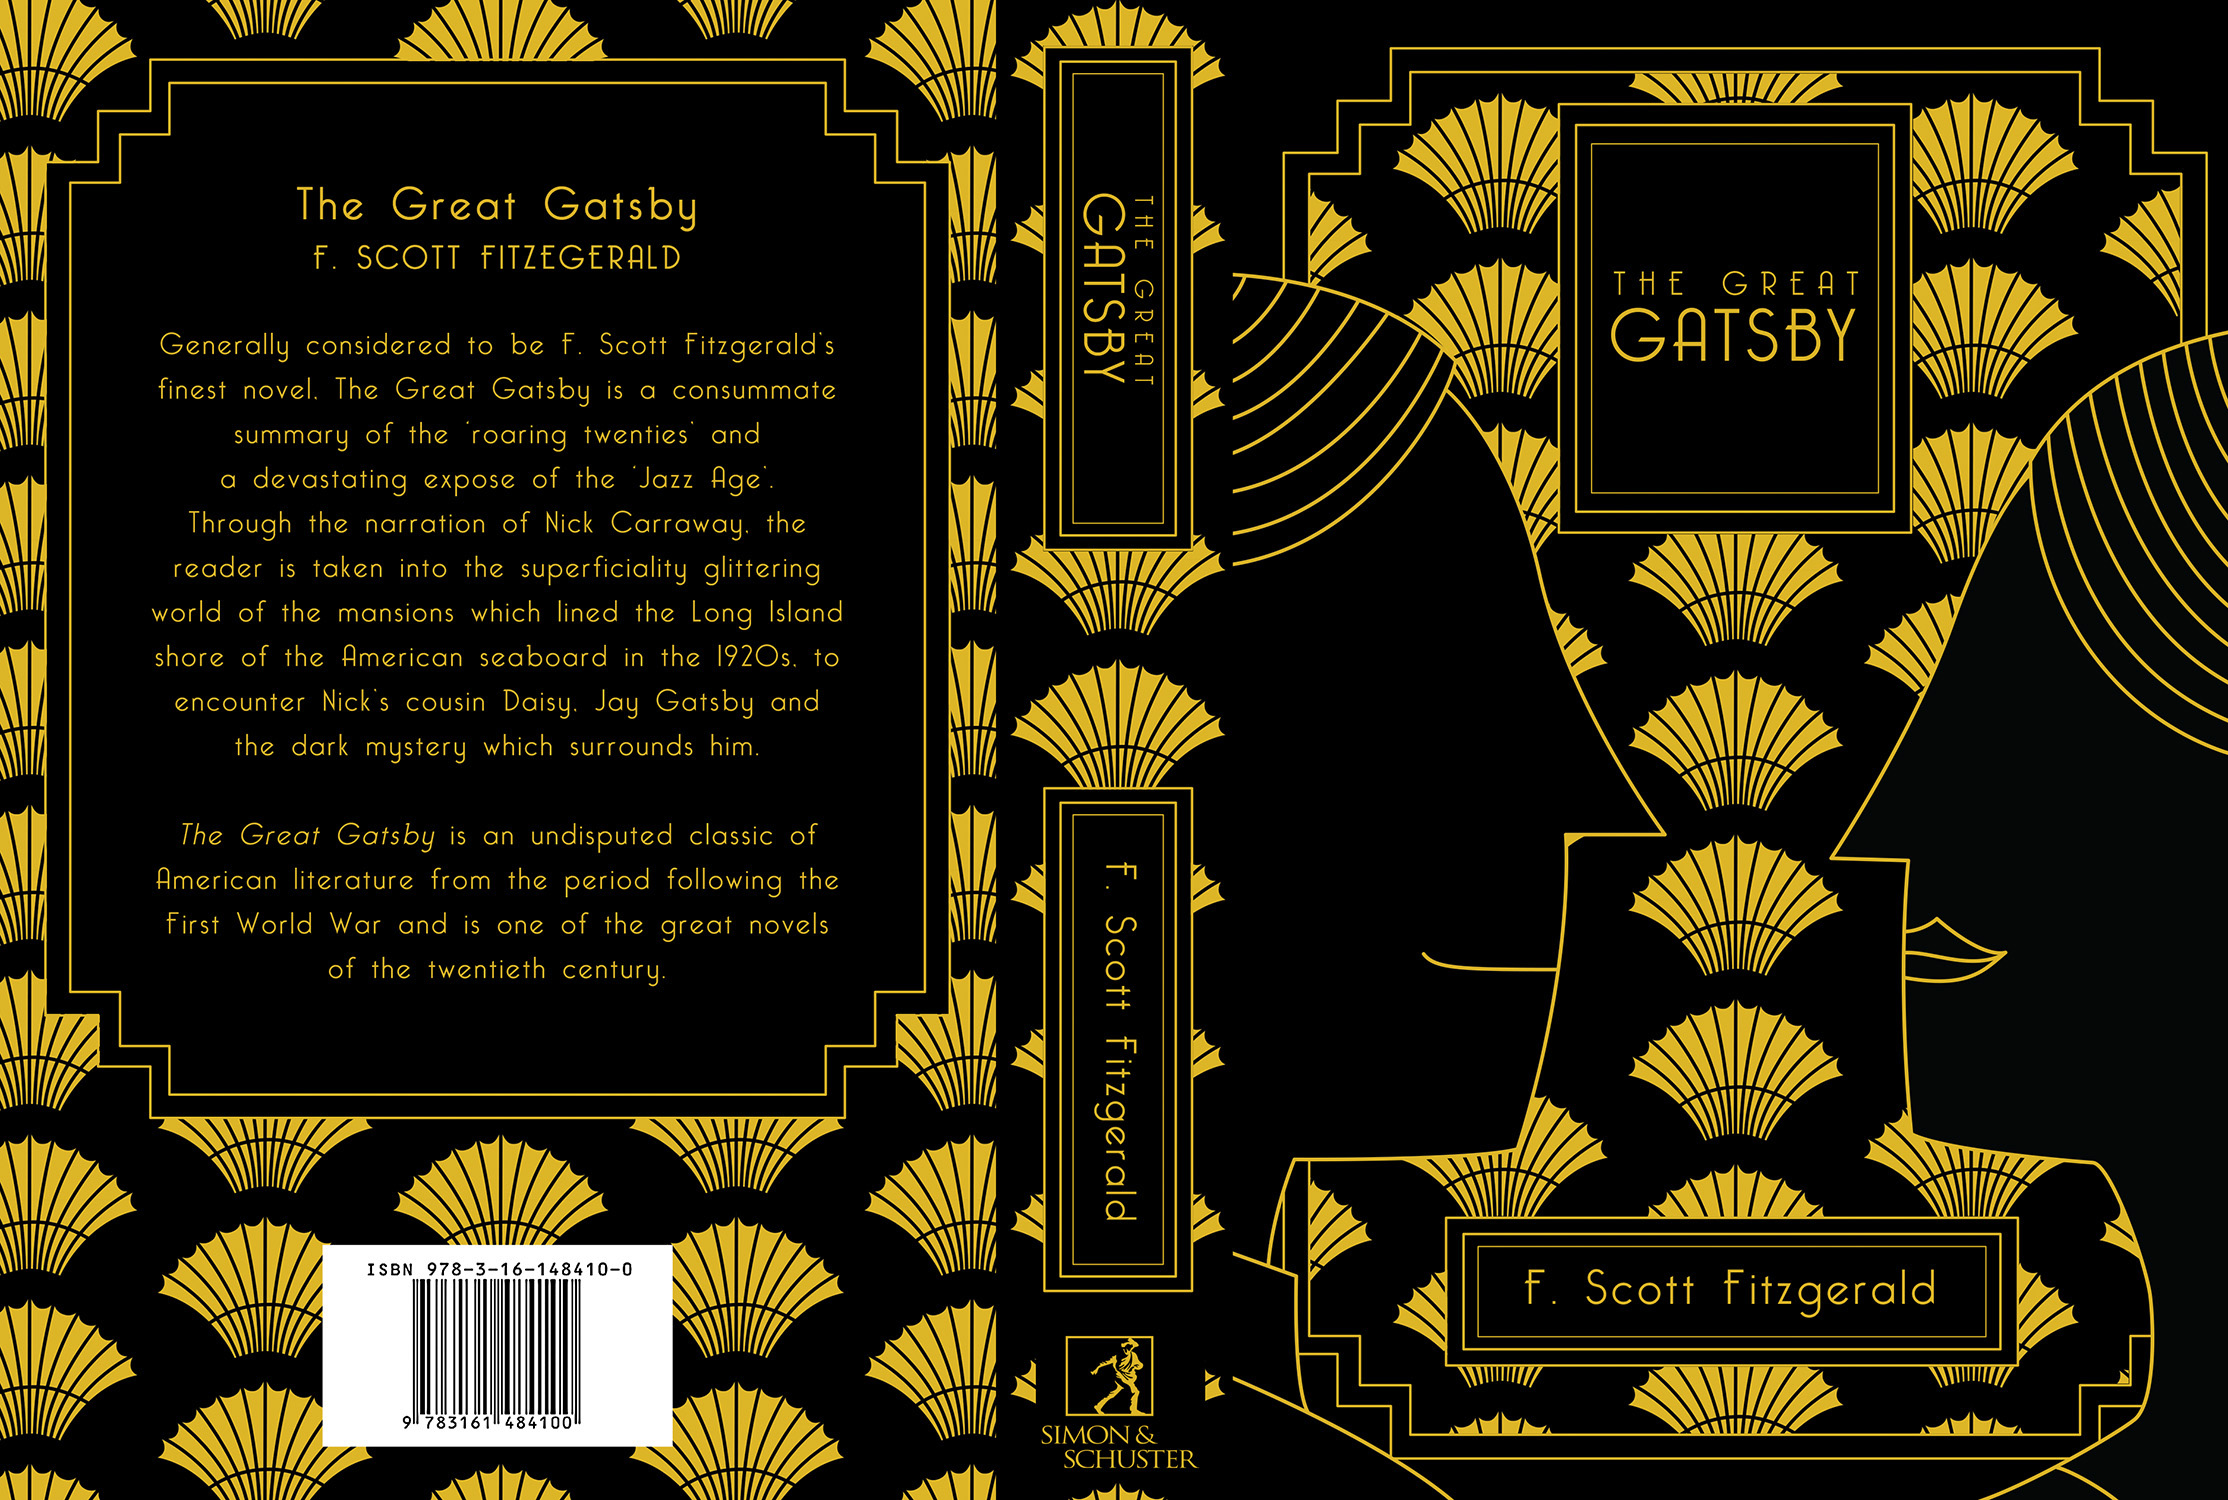 MINI-SYS.COM Shirley Susilo the great gatsby book cover jacket illustration.jpg